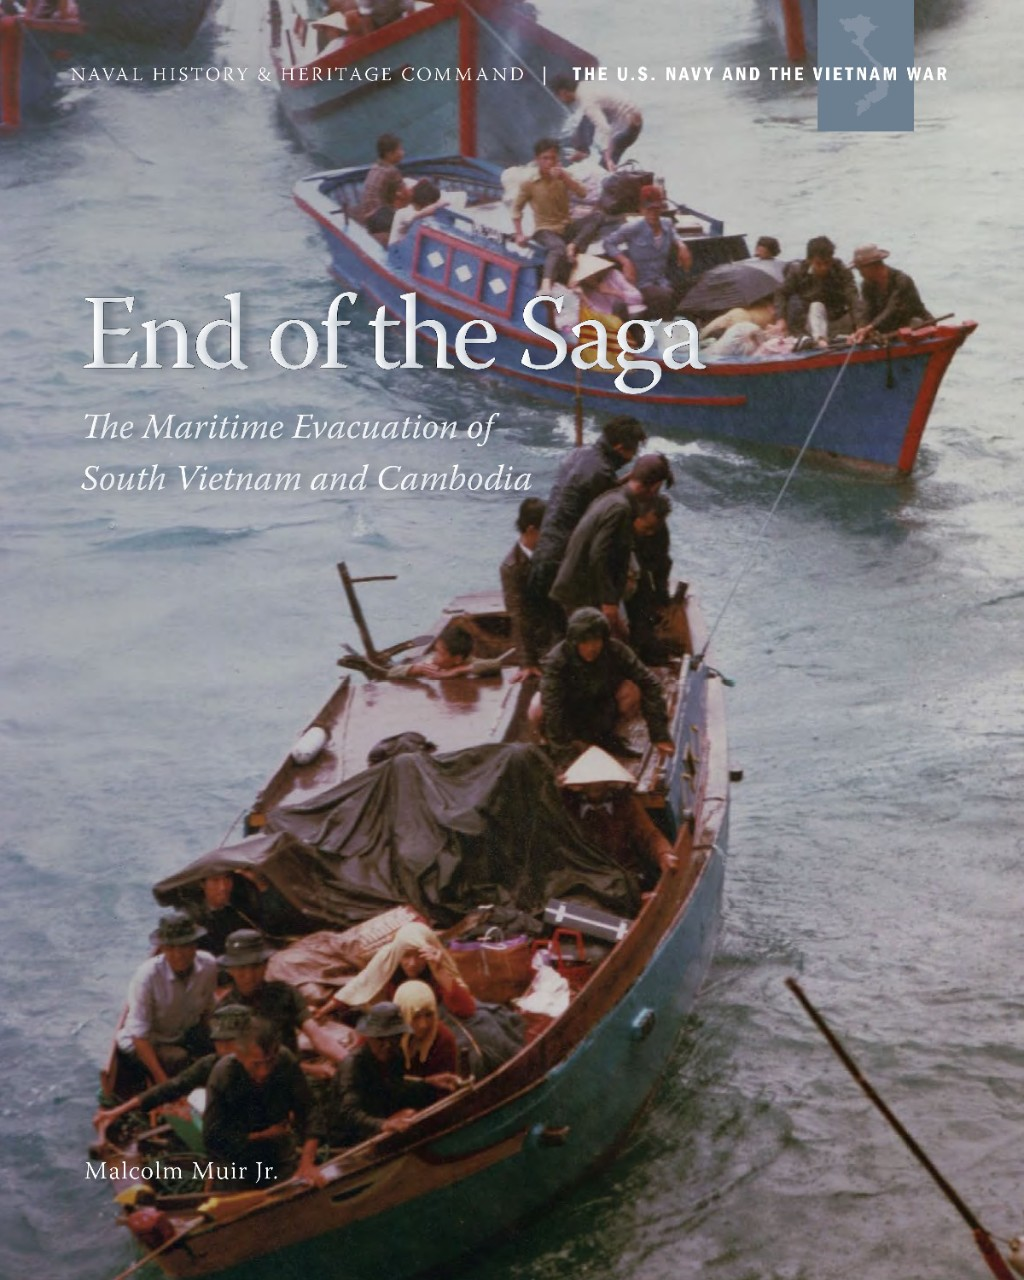 Book Cover of End of the Saga: The Maritime Evacuation of South Vietnam and Cambodia